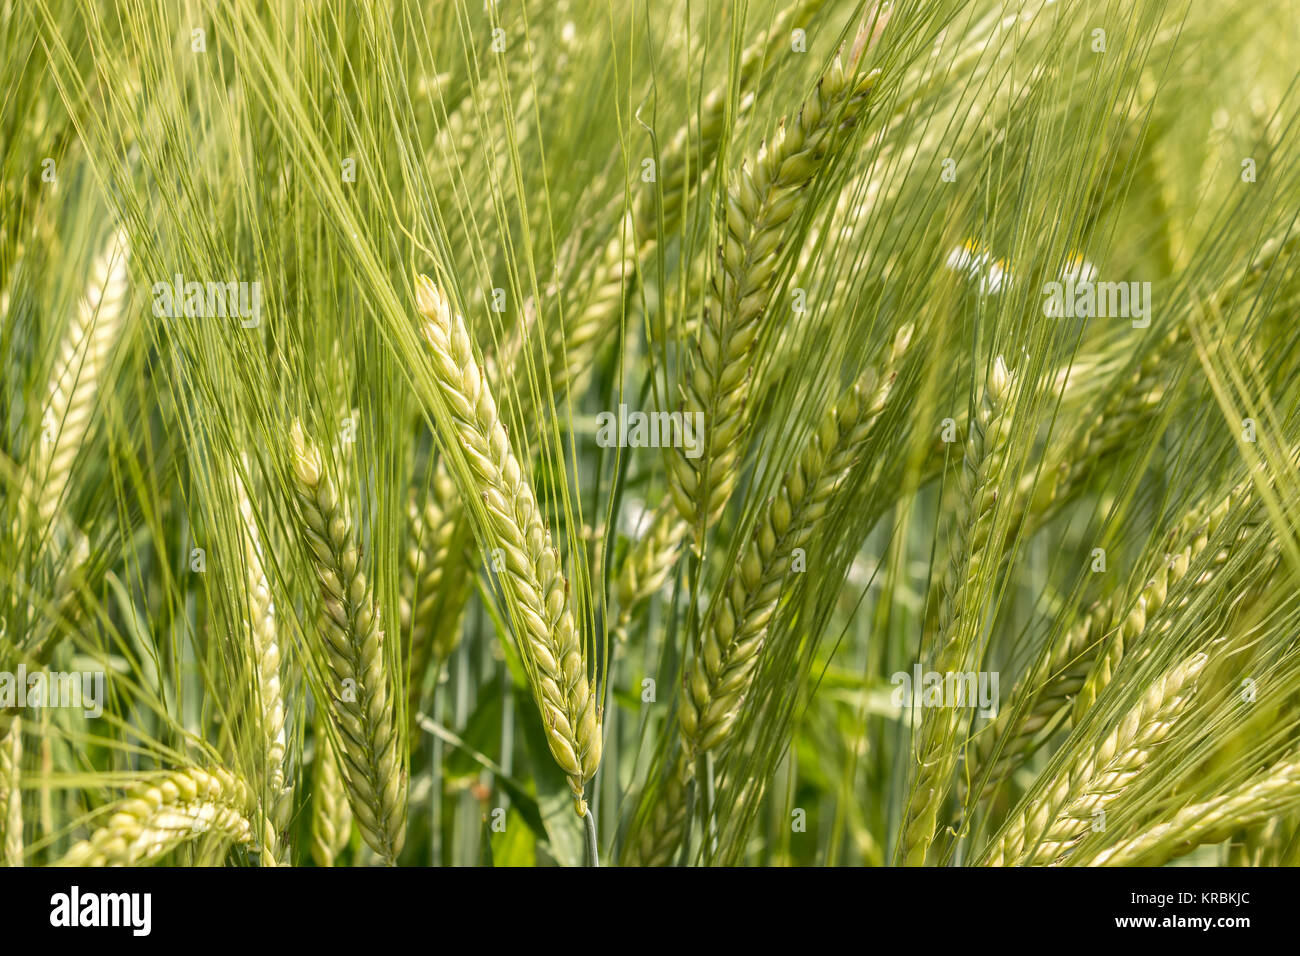 Big fields of high and green grain and forest in the background - Stock Image